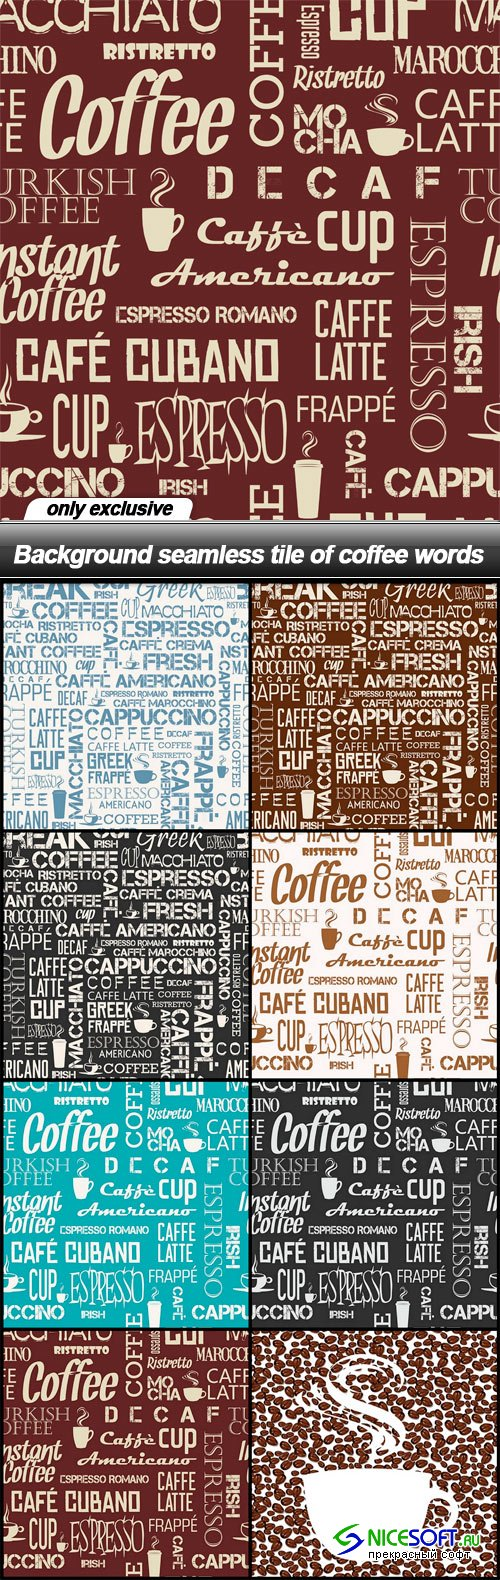 Background seamless tile of coffee words